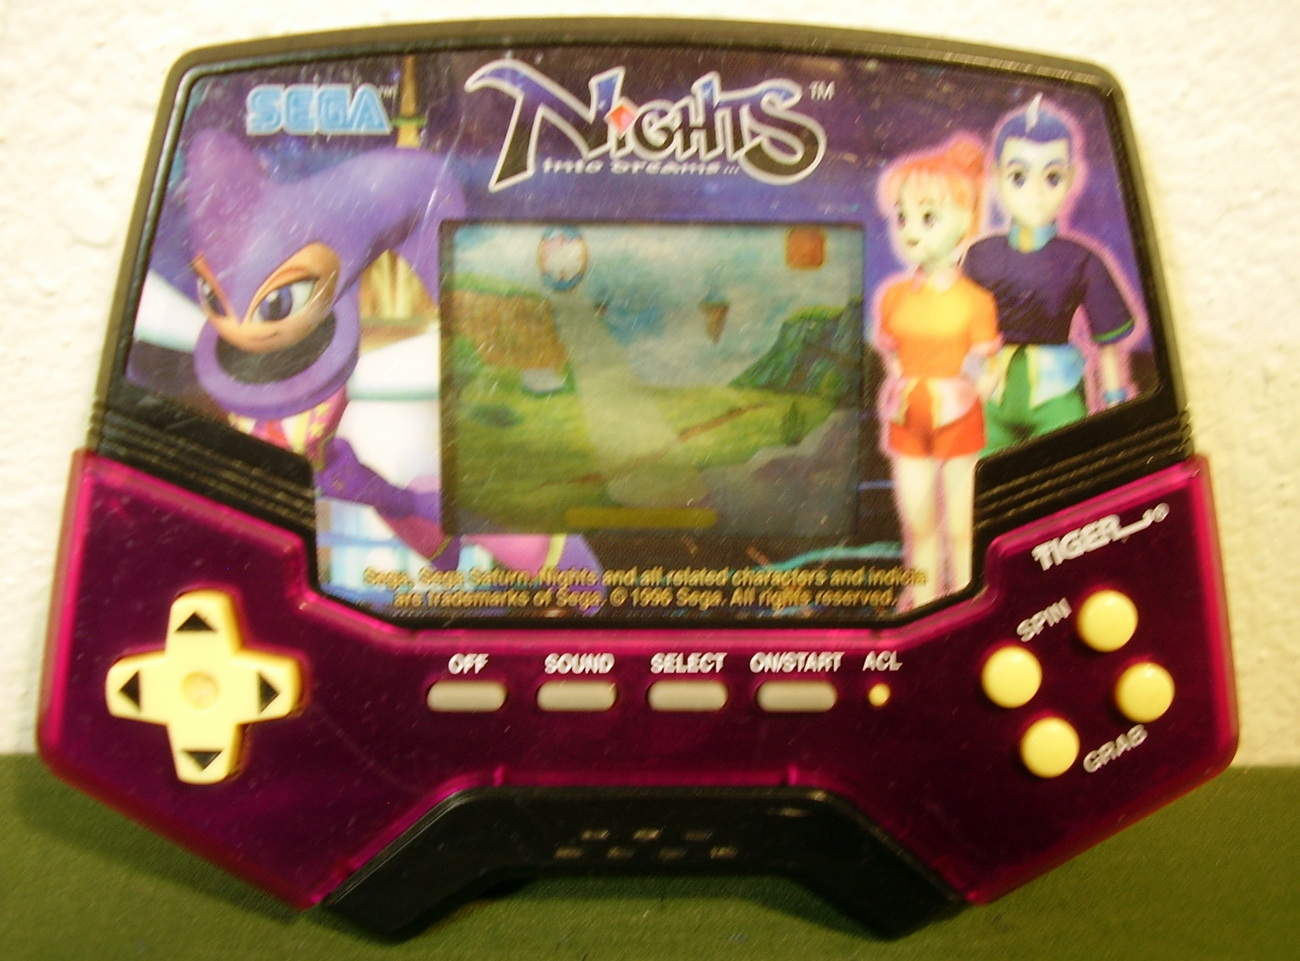 Tiger Sega Nights Into Dreams Handheld Electronic Game